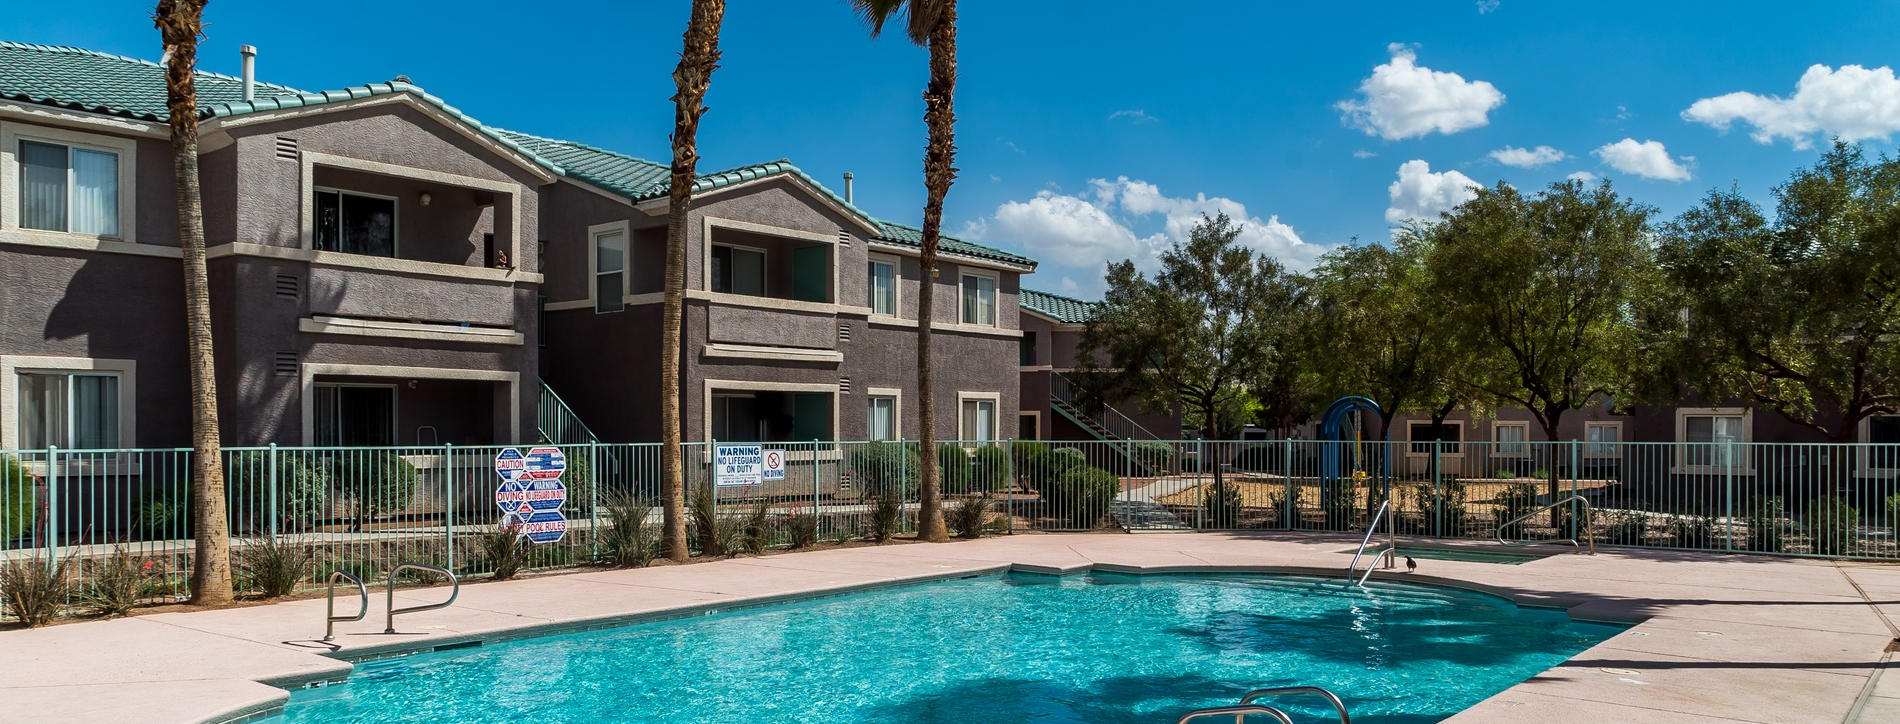 apartments for rent in las vegas nv orchard club home